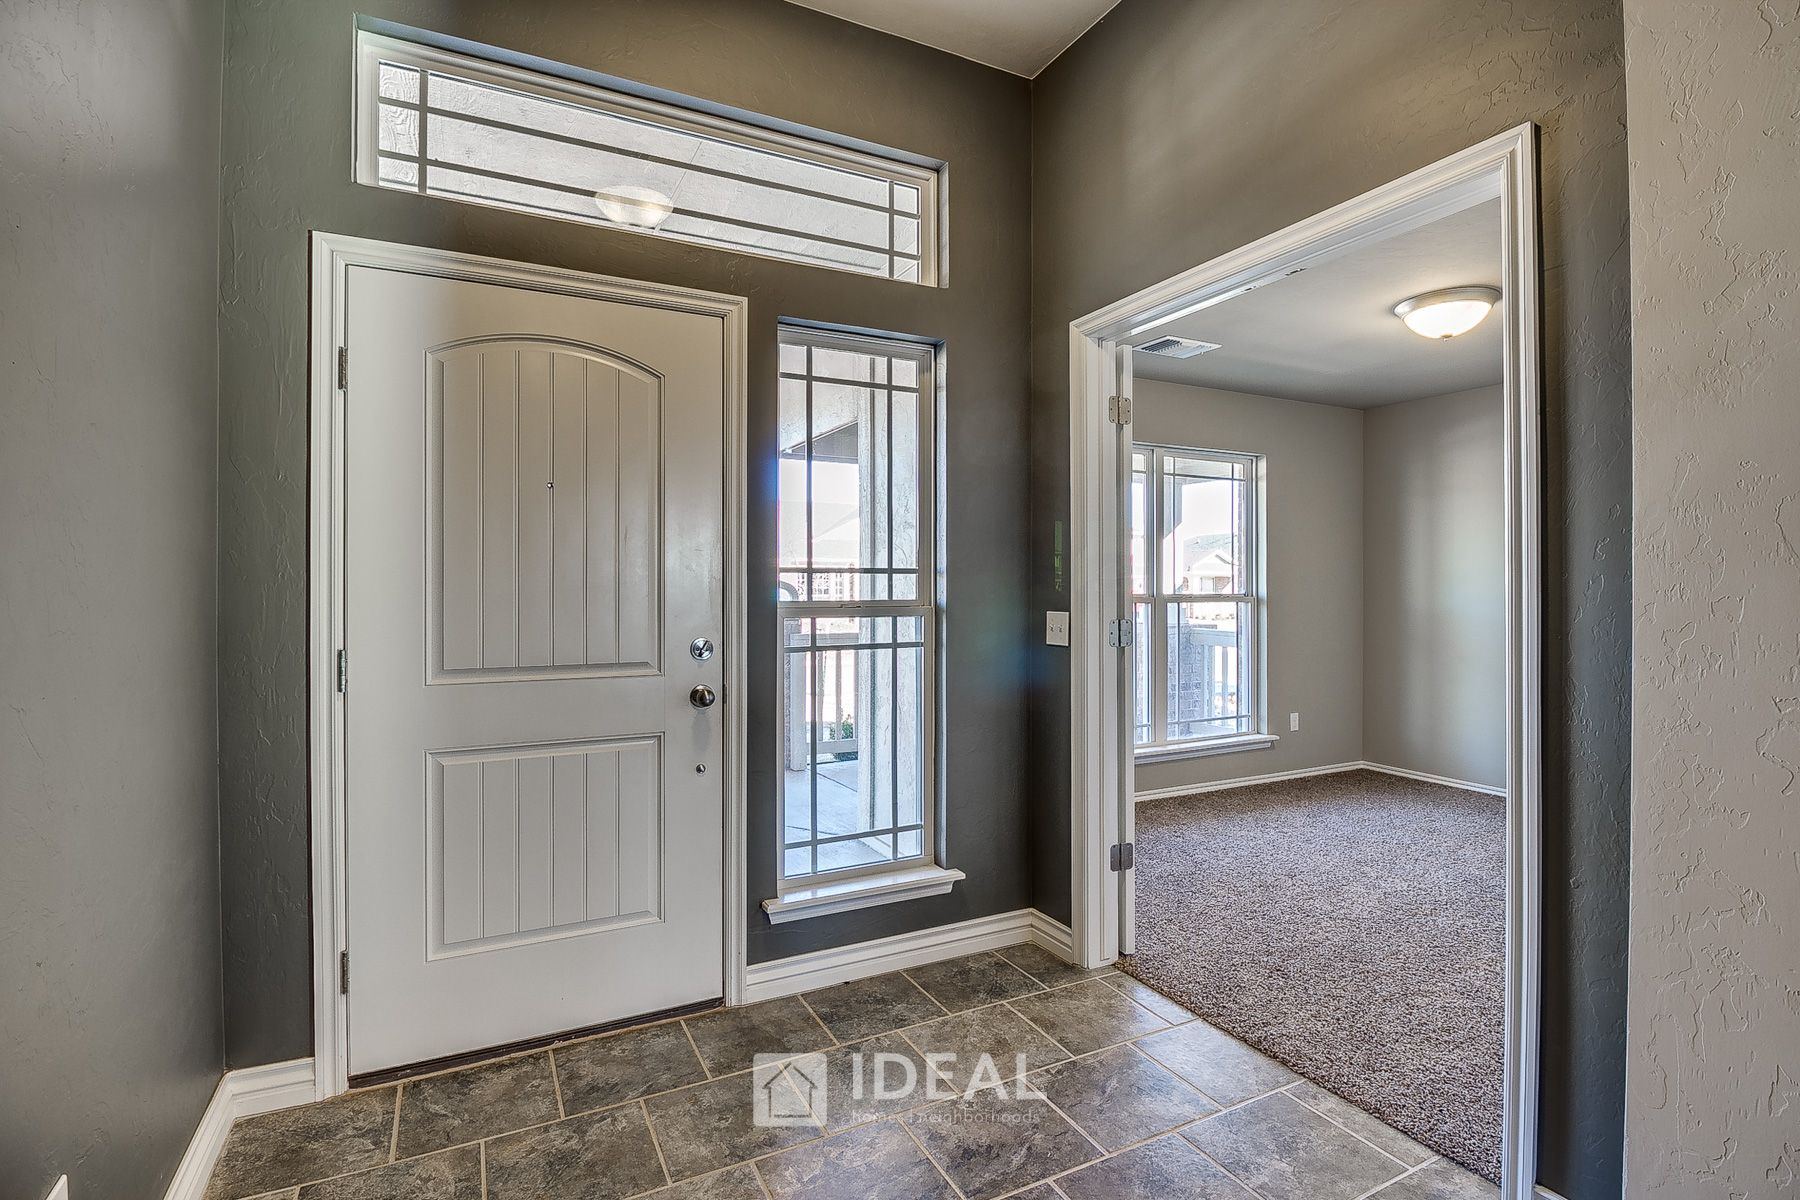 Living Area featured in the Kensington By Ideal Homes in Oklahoma City, OK